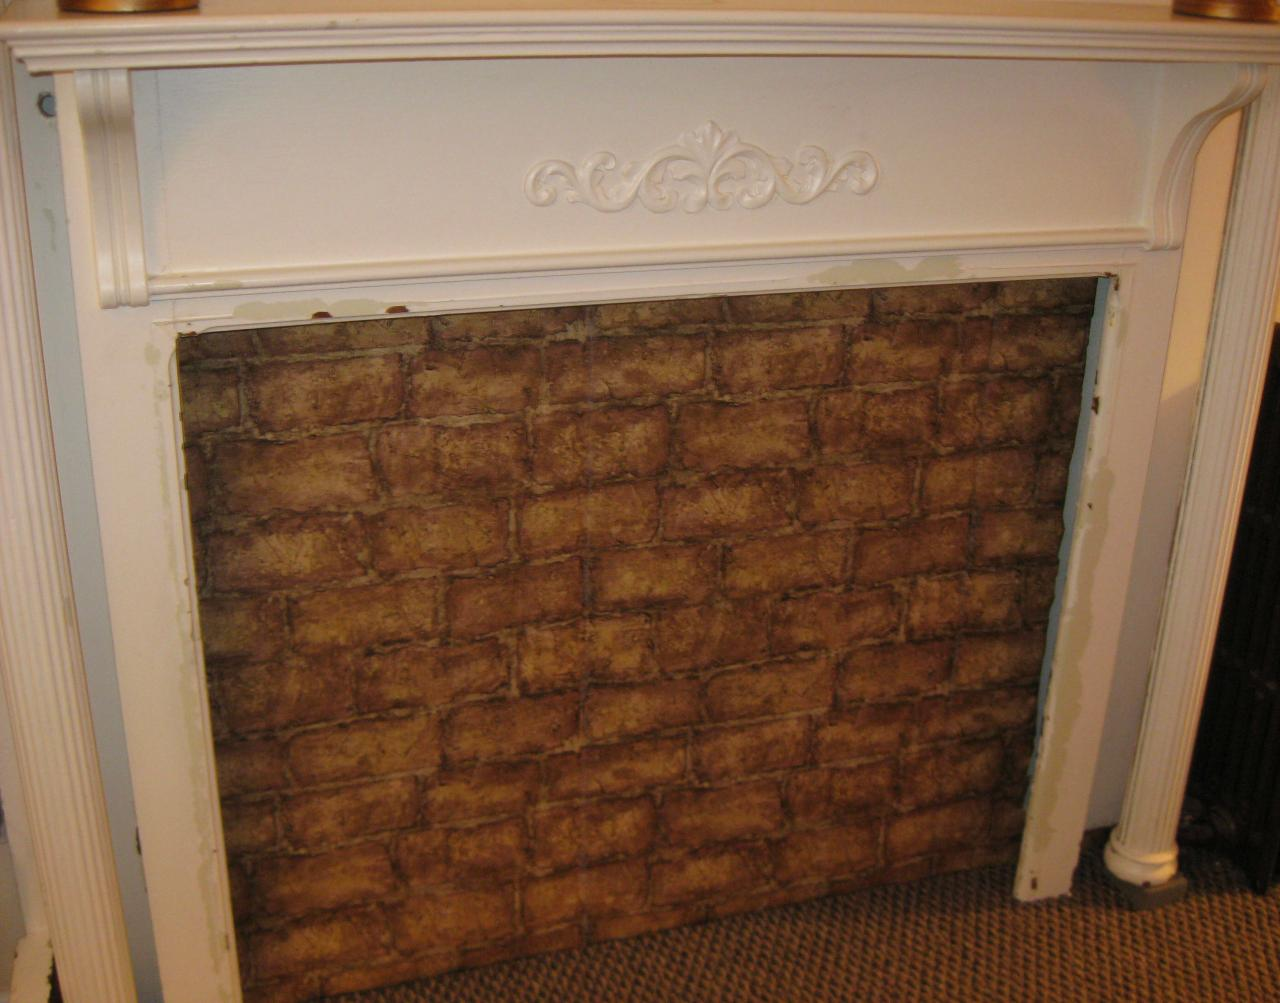 Find out how to add vintage charm to a home with a fireplace mantel for those who rent a house or apartment and don